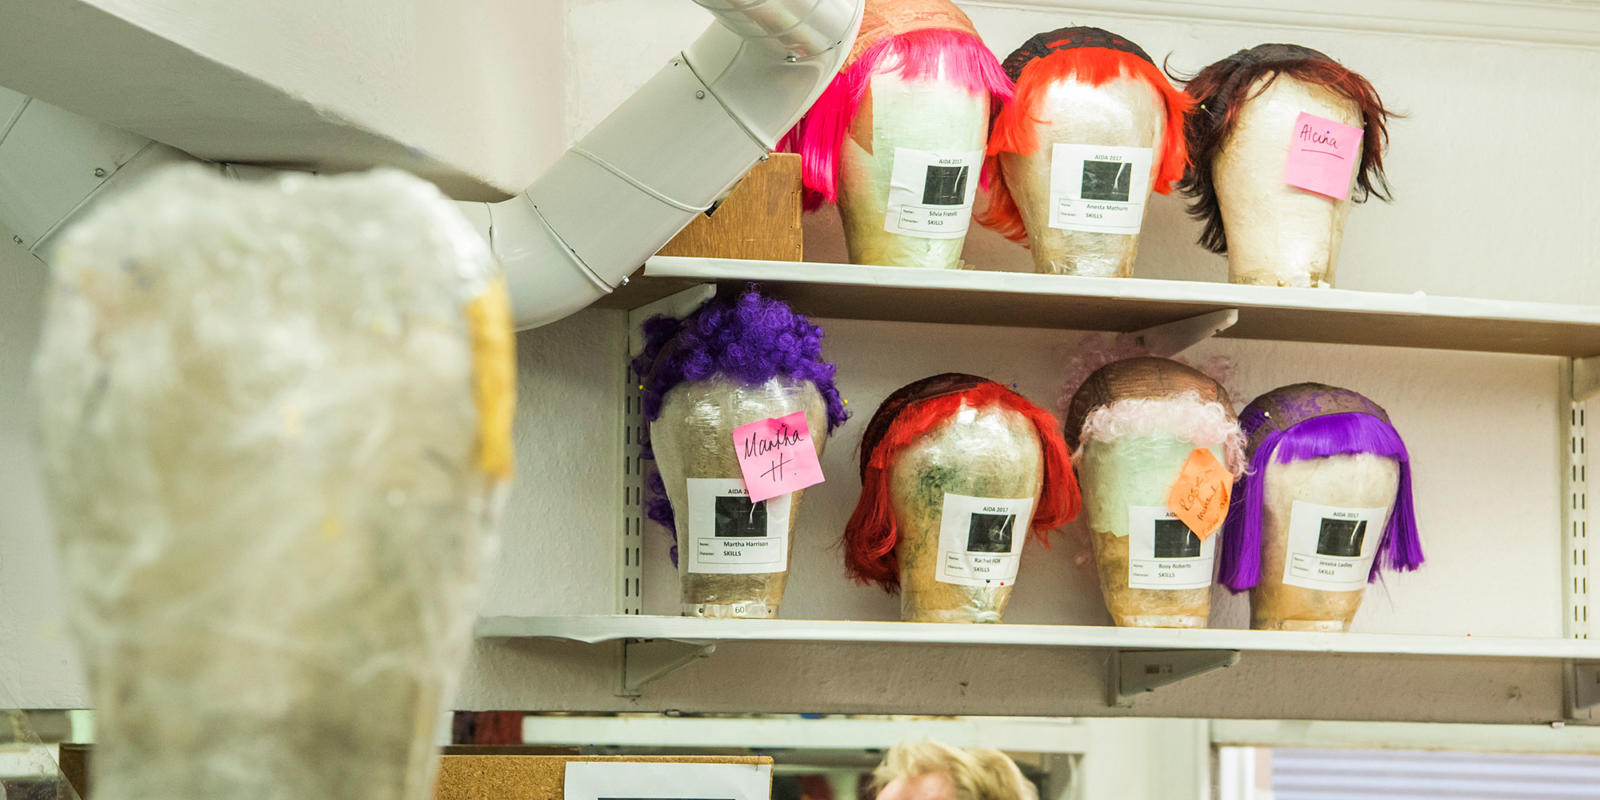 Wigs backstage ready to be worn by the acrobats (c) Tristram Kenton